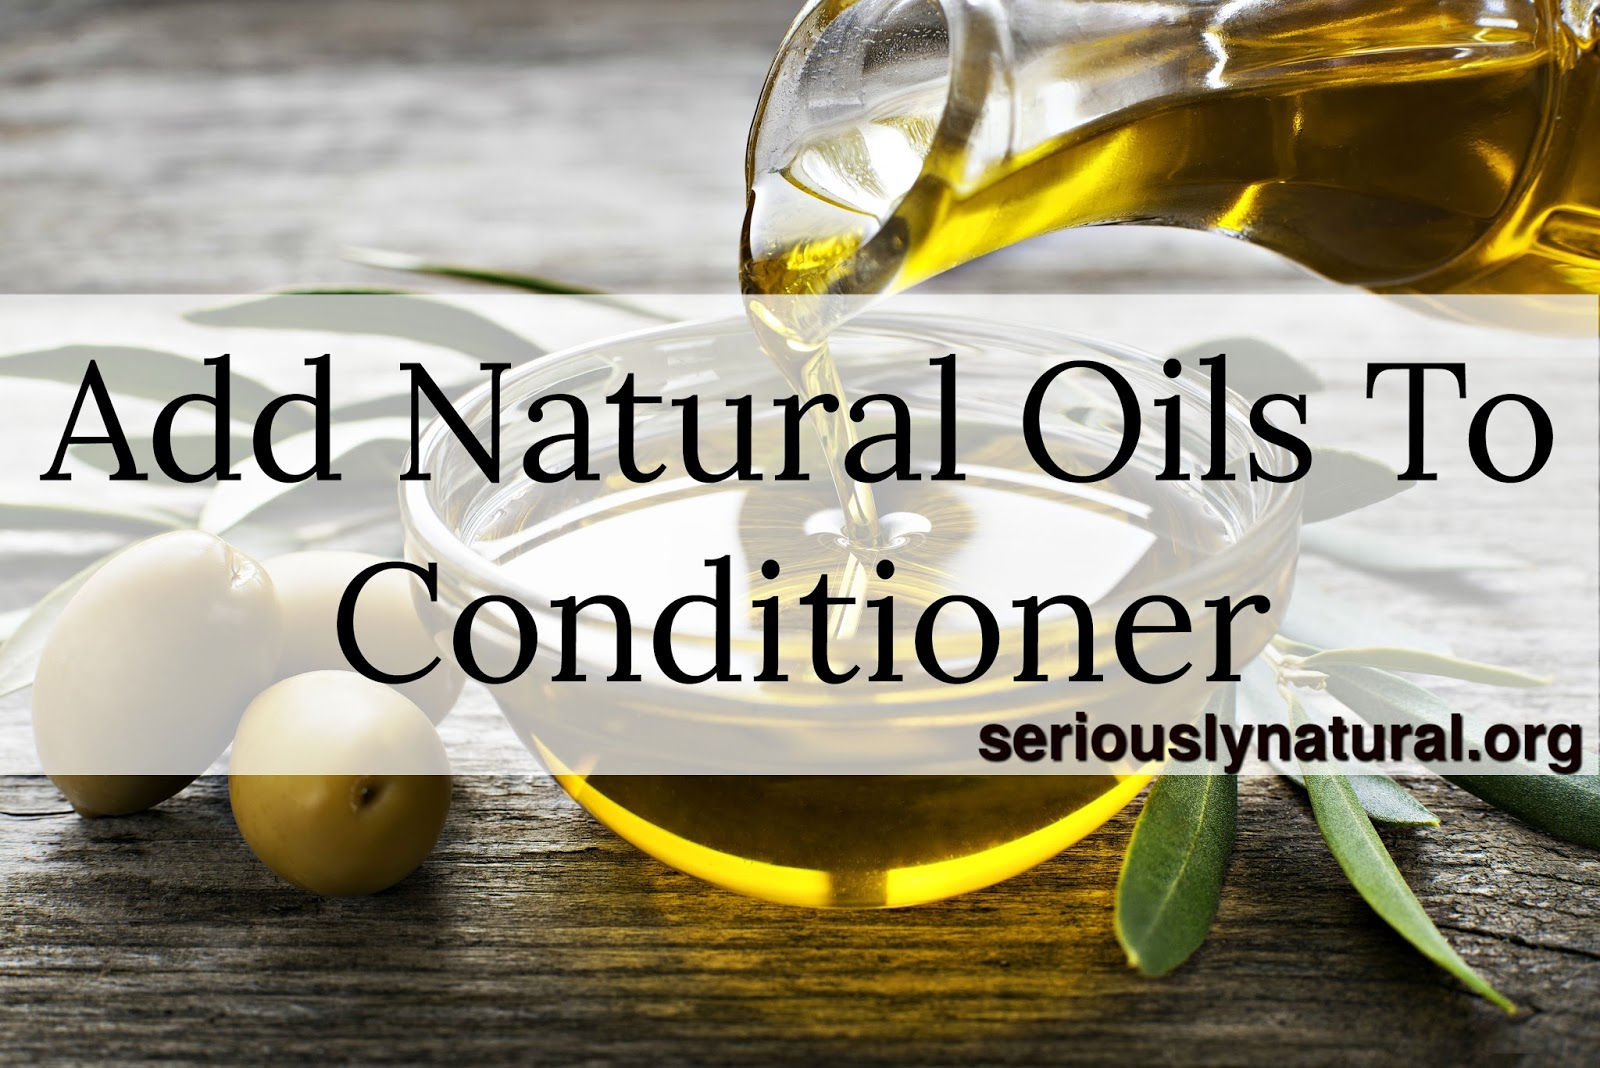 Click here to buy Now Solutions, Organic Jojoba Oil, Moisturizing Multi-Purpose Oil to add to your conditioner